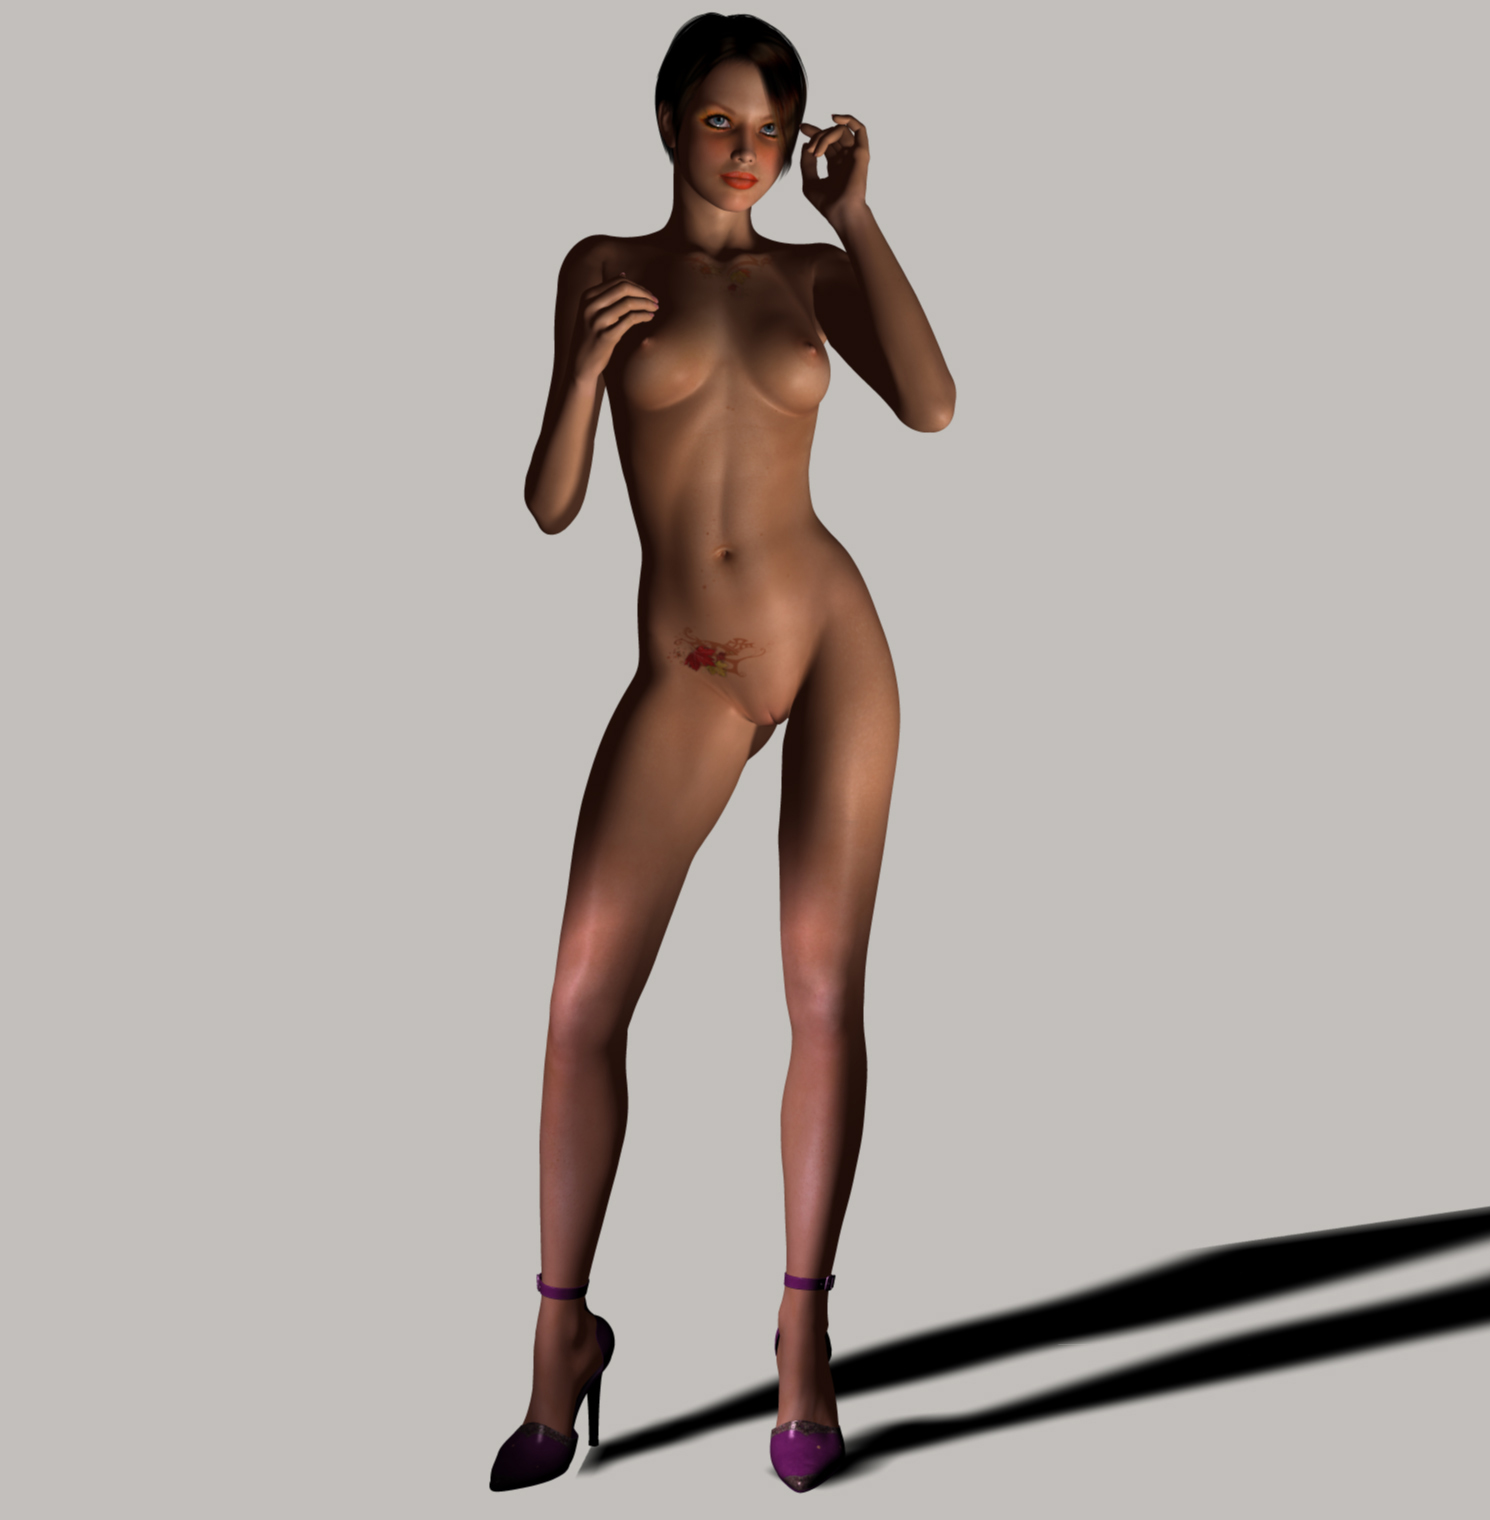 3D Archive - Free 3D porn site: galleries1.adult-empire.com/6850/149192/6374/index.php